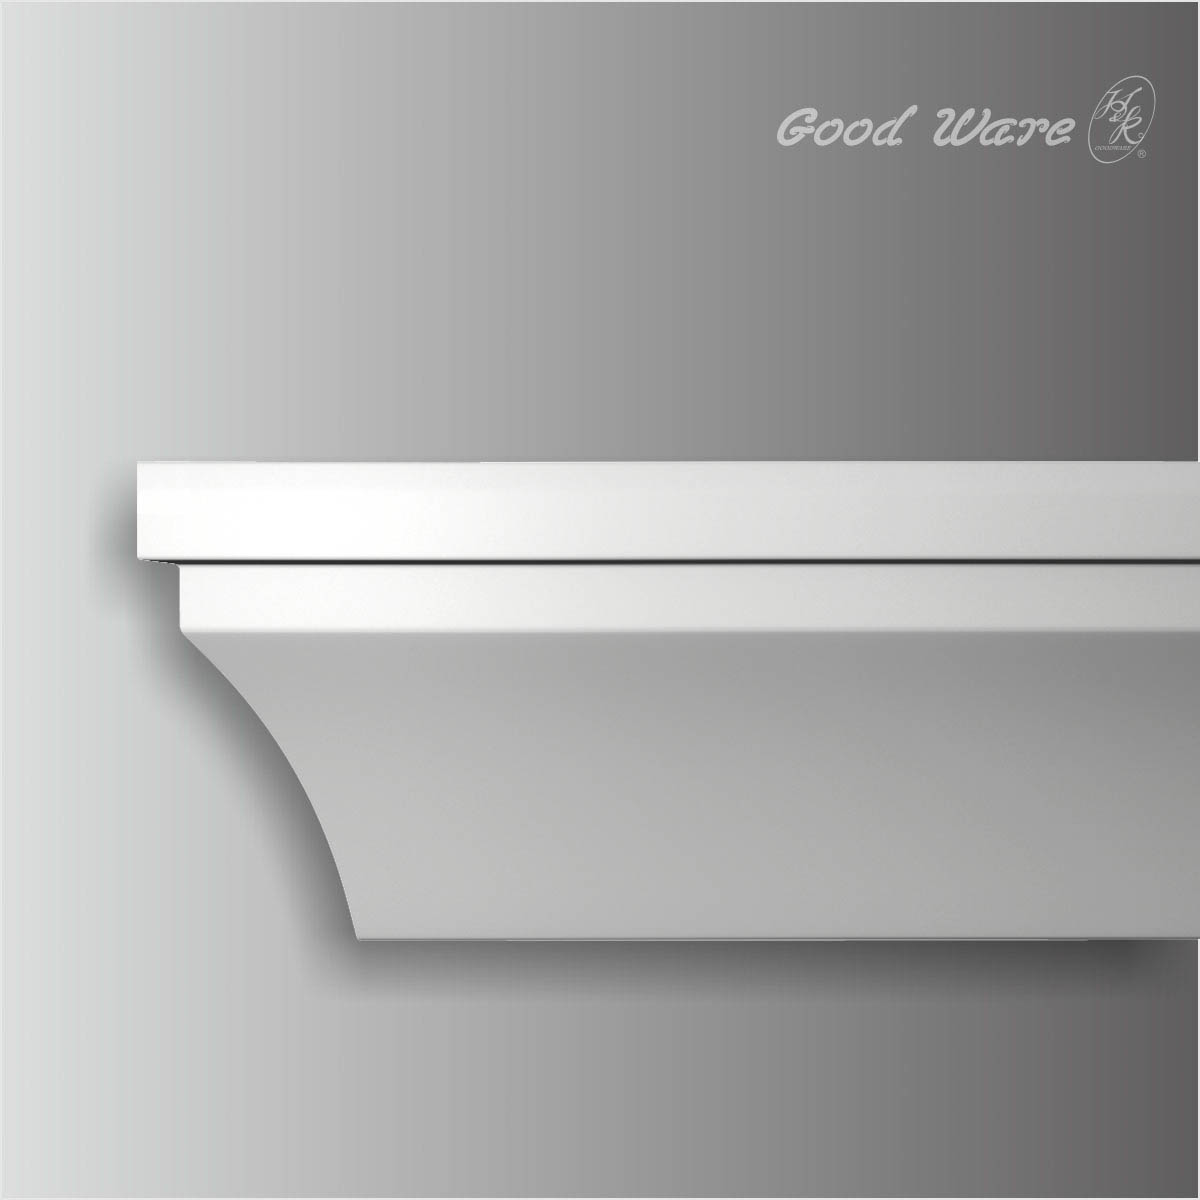 Large classic plain crown molding